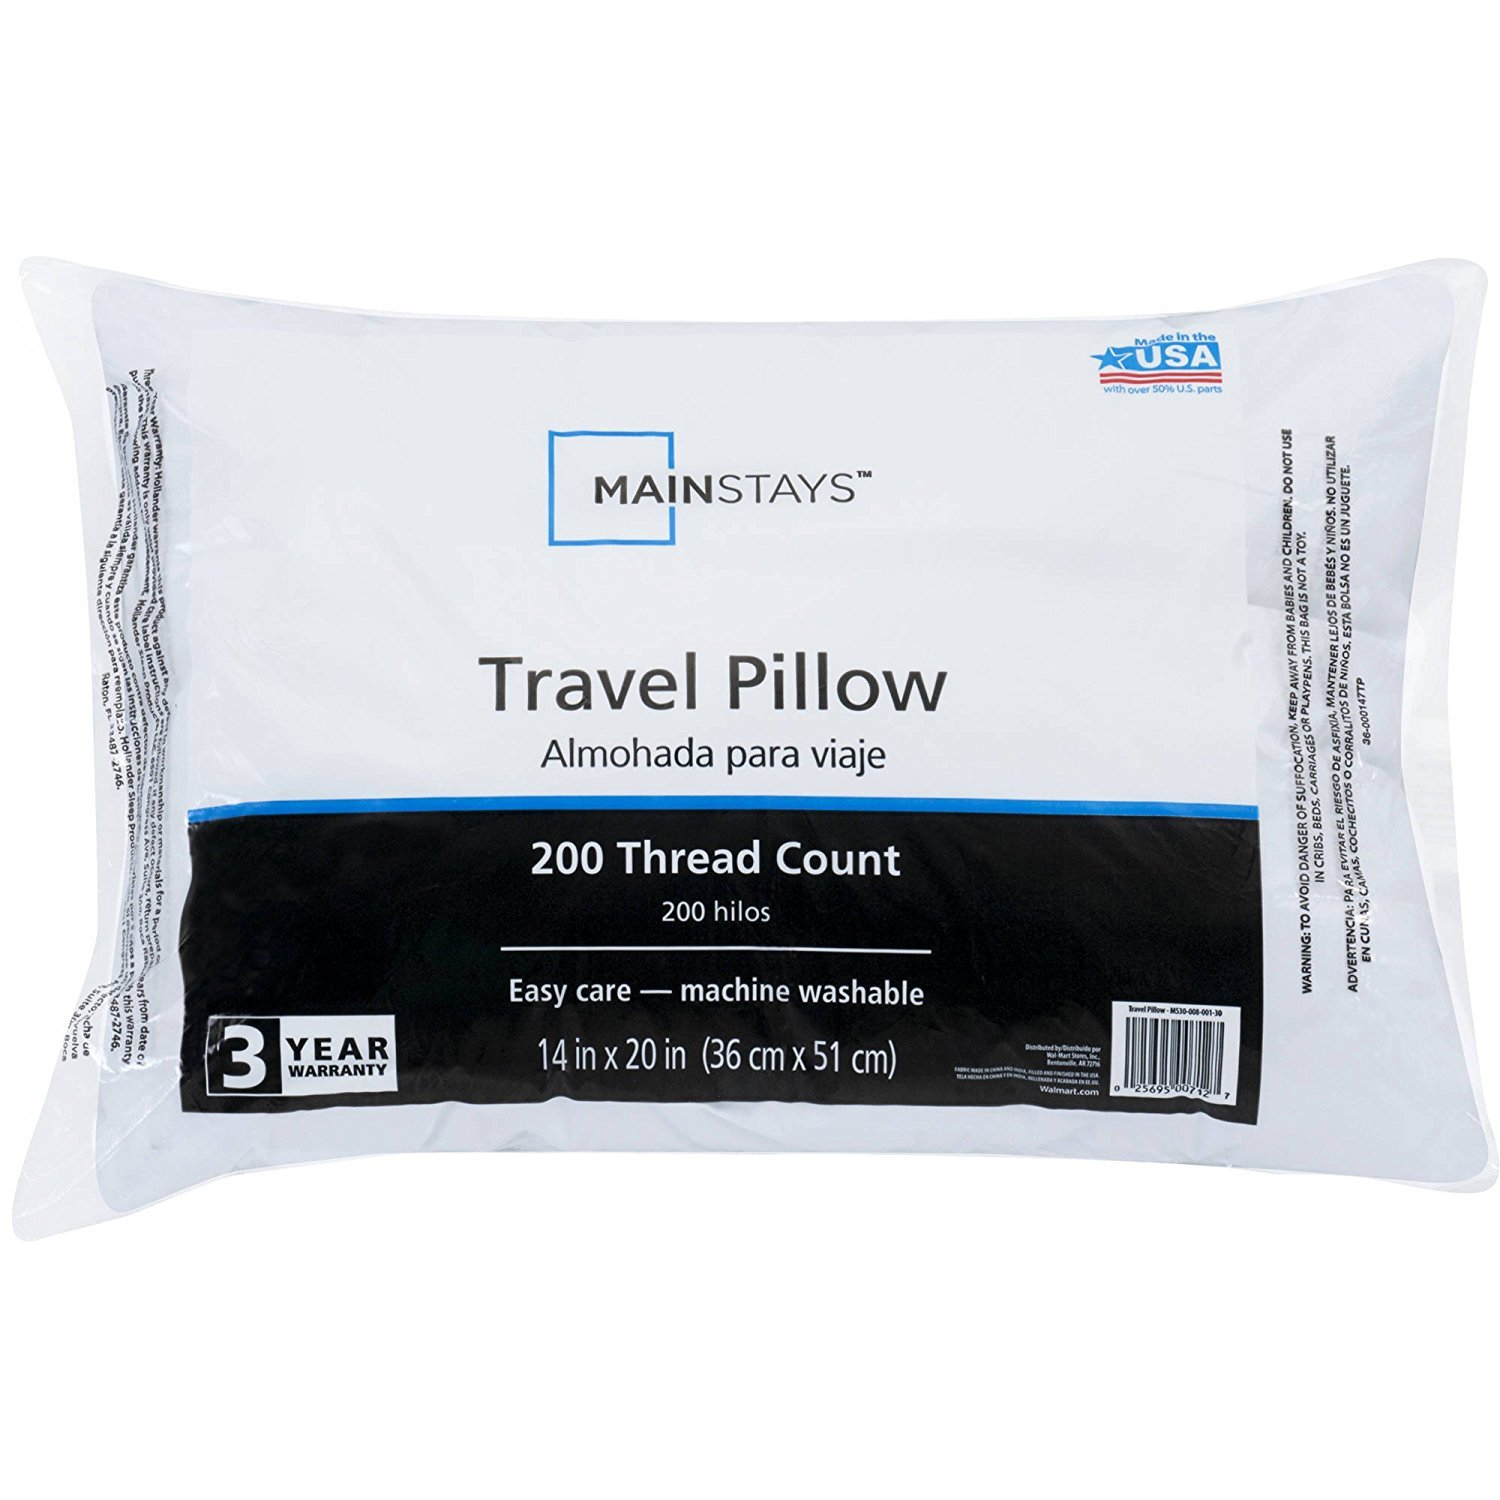 Mainstay MS30 008 001 30 94468 3018 Travel Pillow